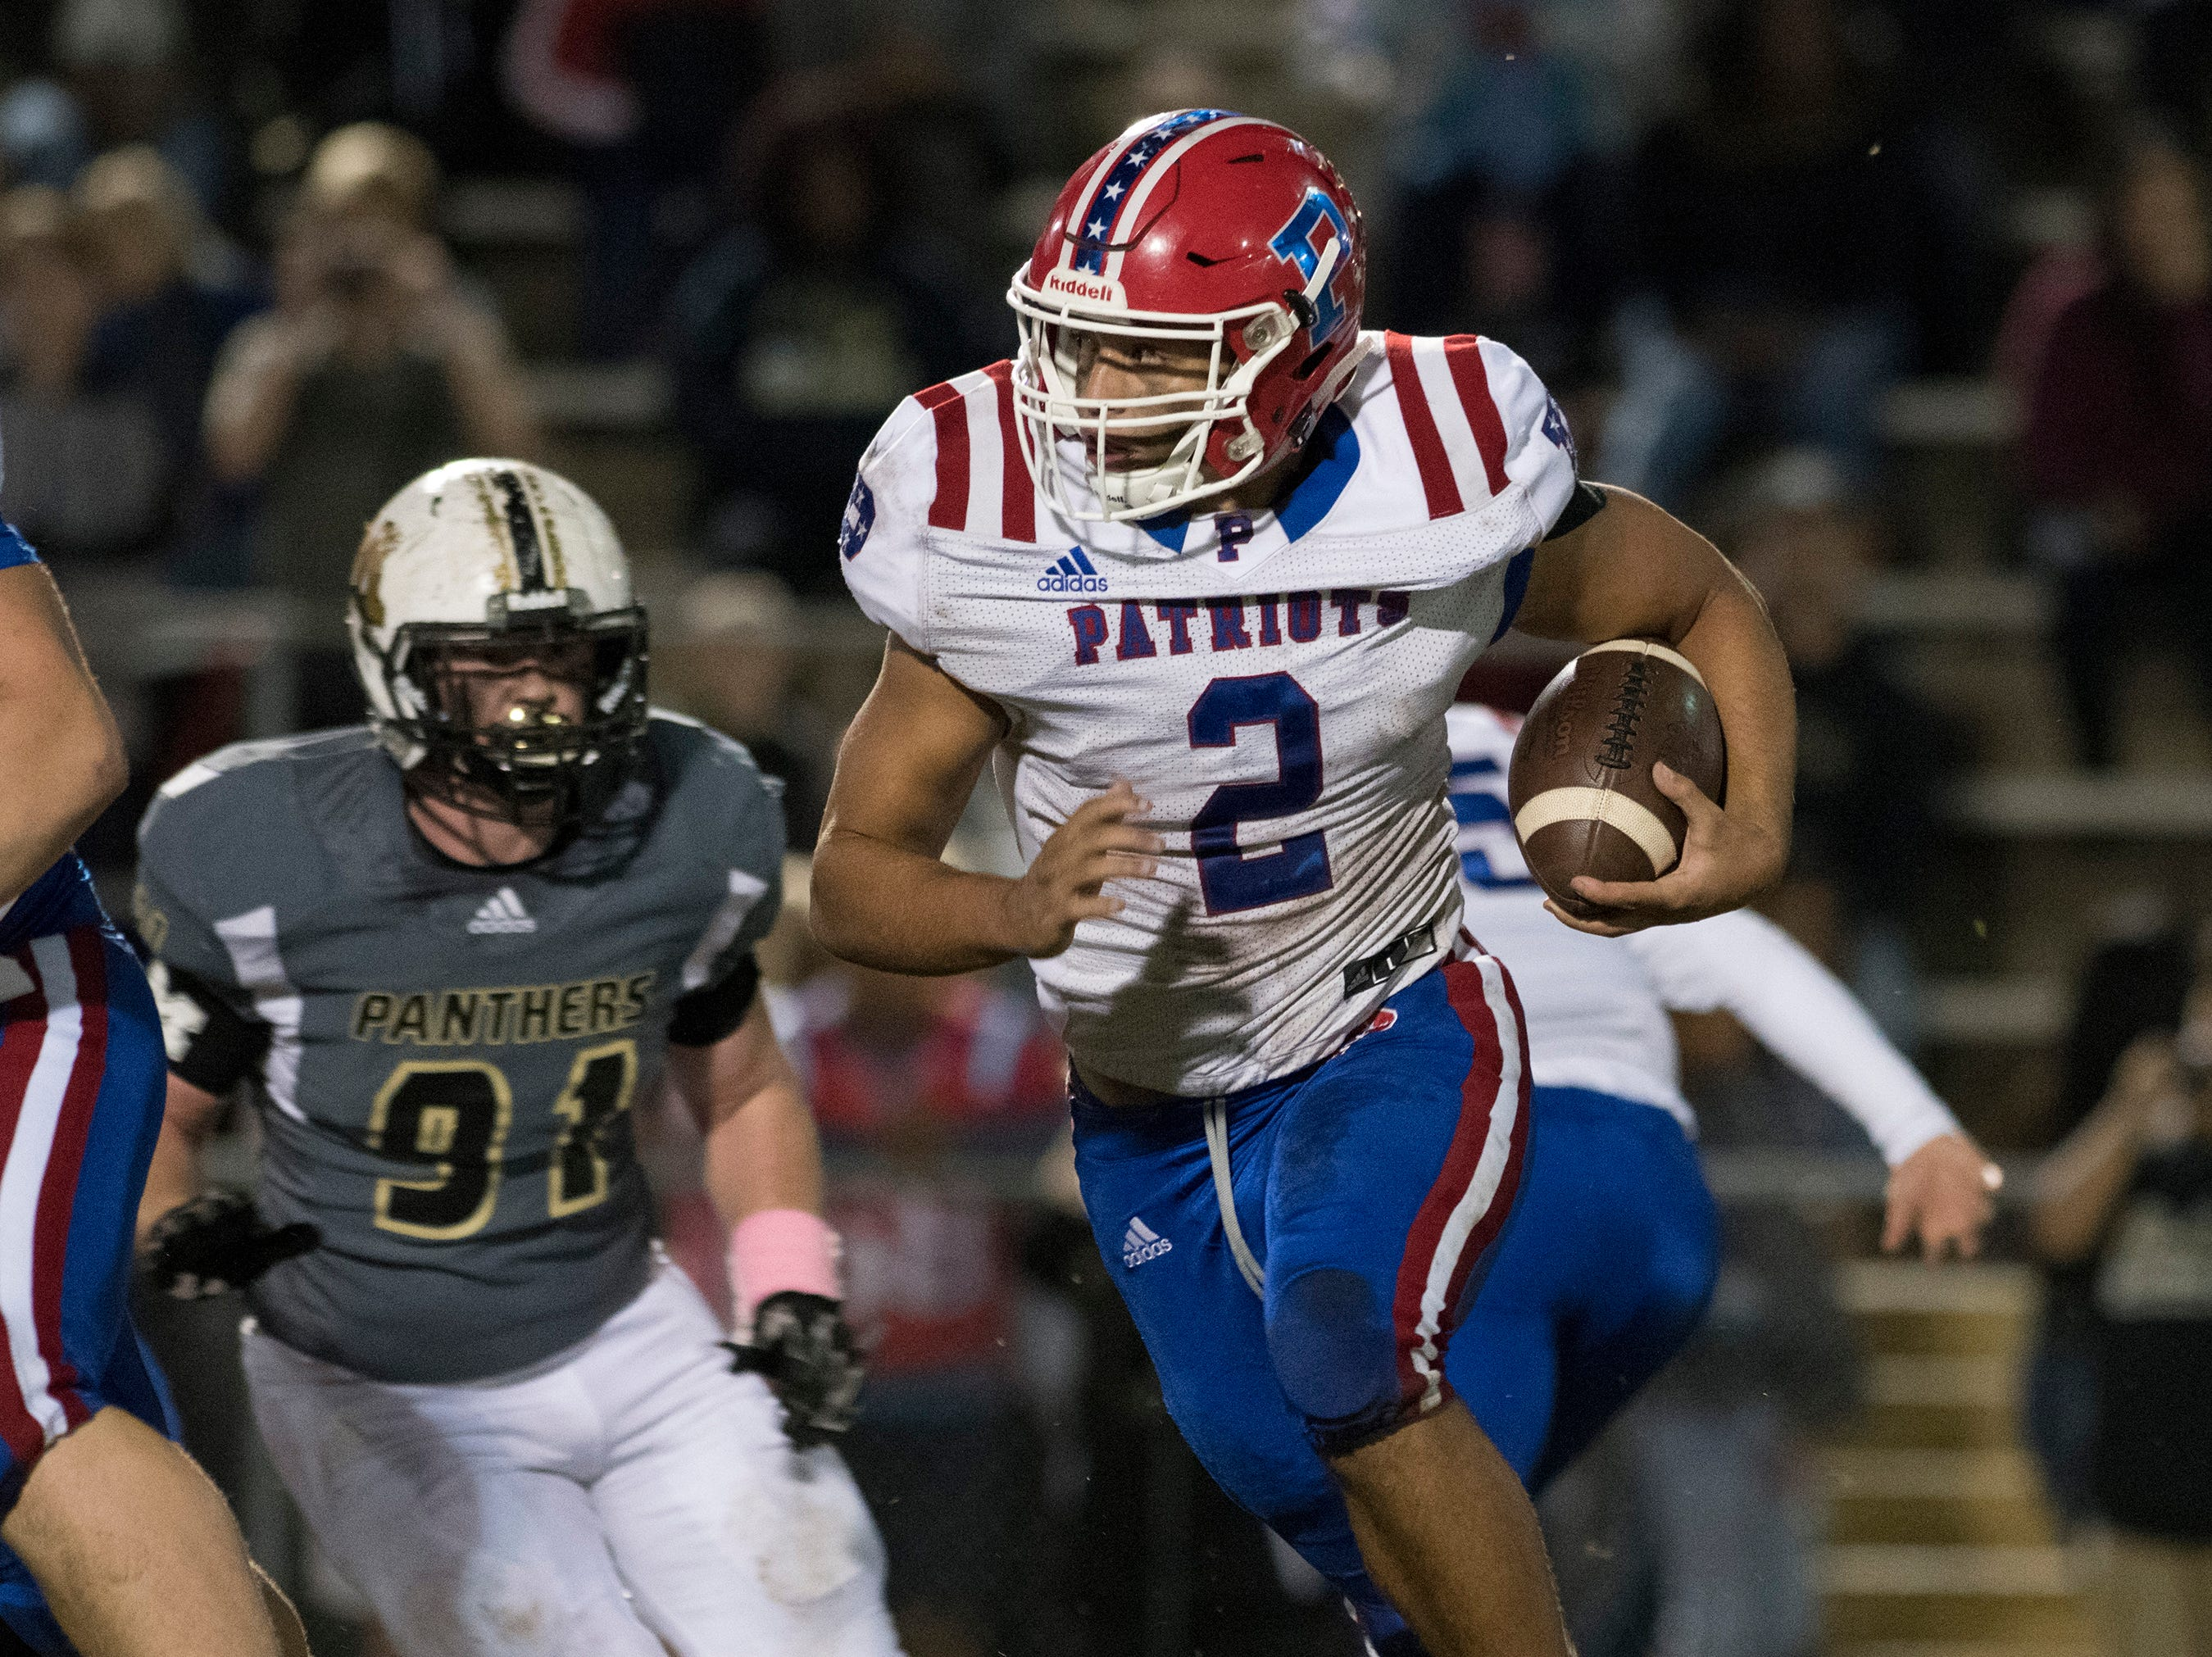 Pace High School's Damean Bivins (No. 2) slips past Milton's defense to rack up the yardage during Friday night's rivalry game.